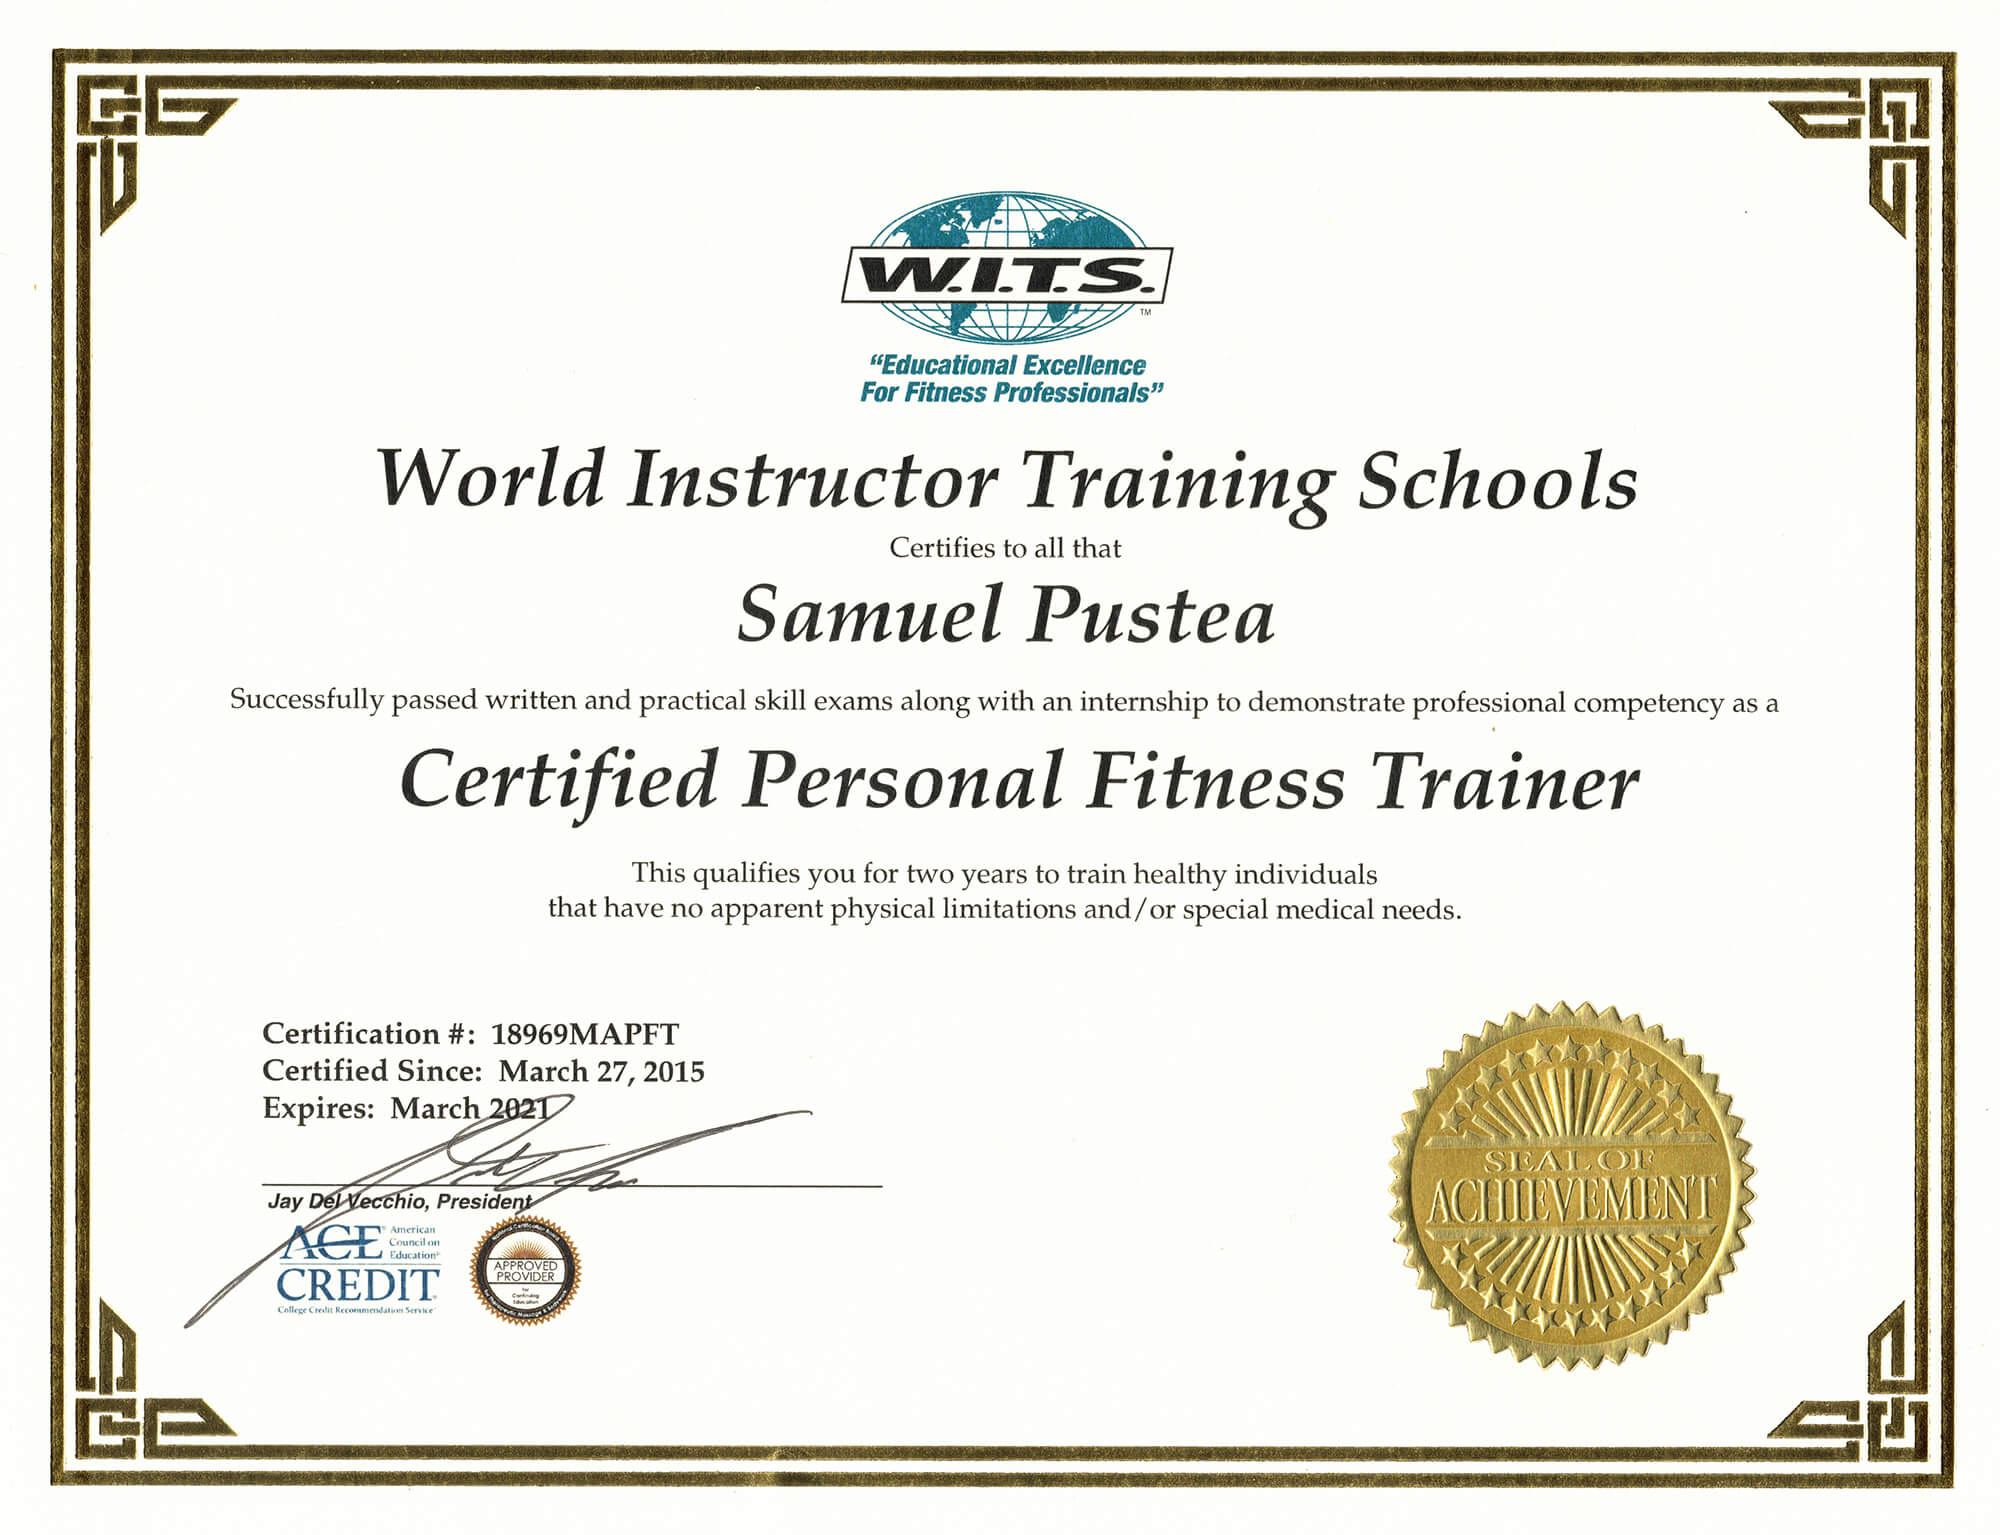 About The Founder: Certified Personal Trainer Certification by World Instructor Training Schools